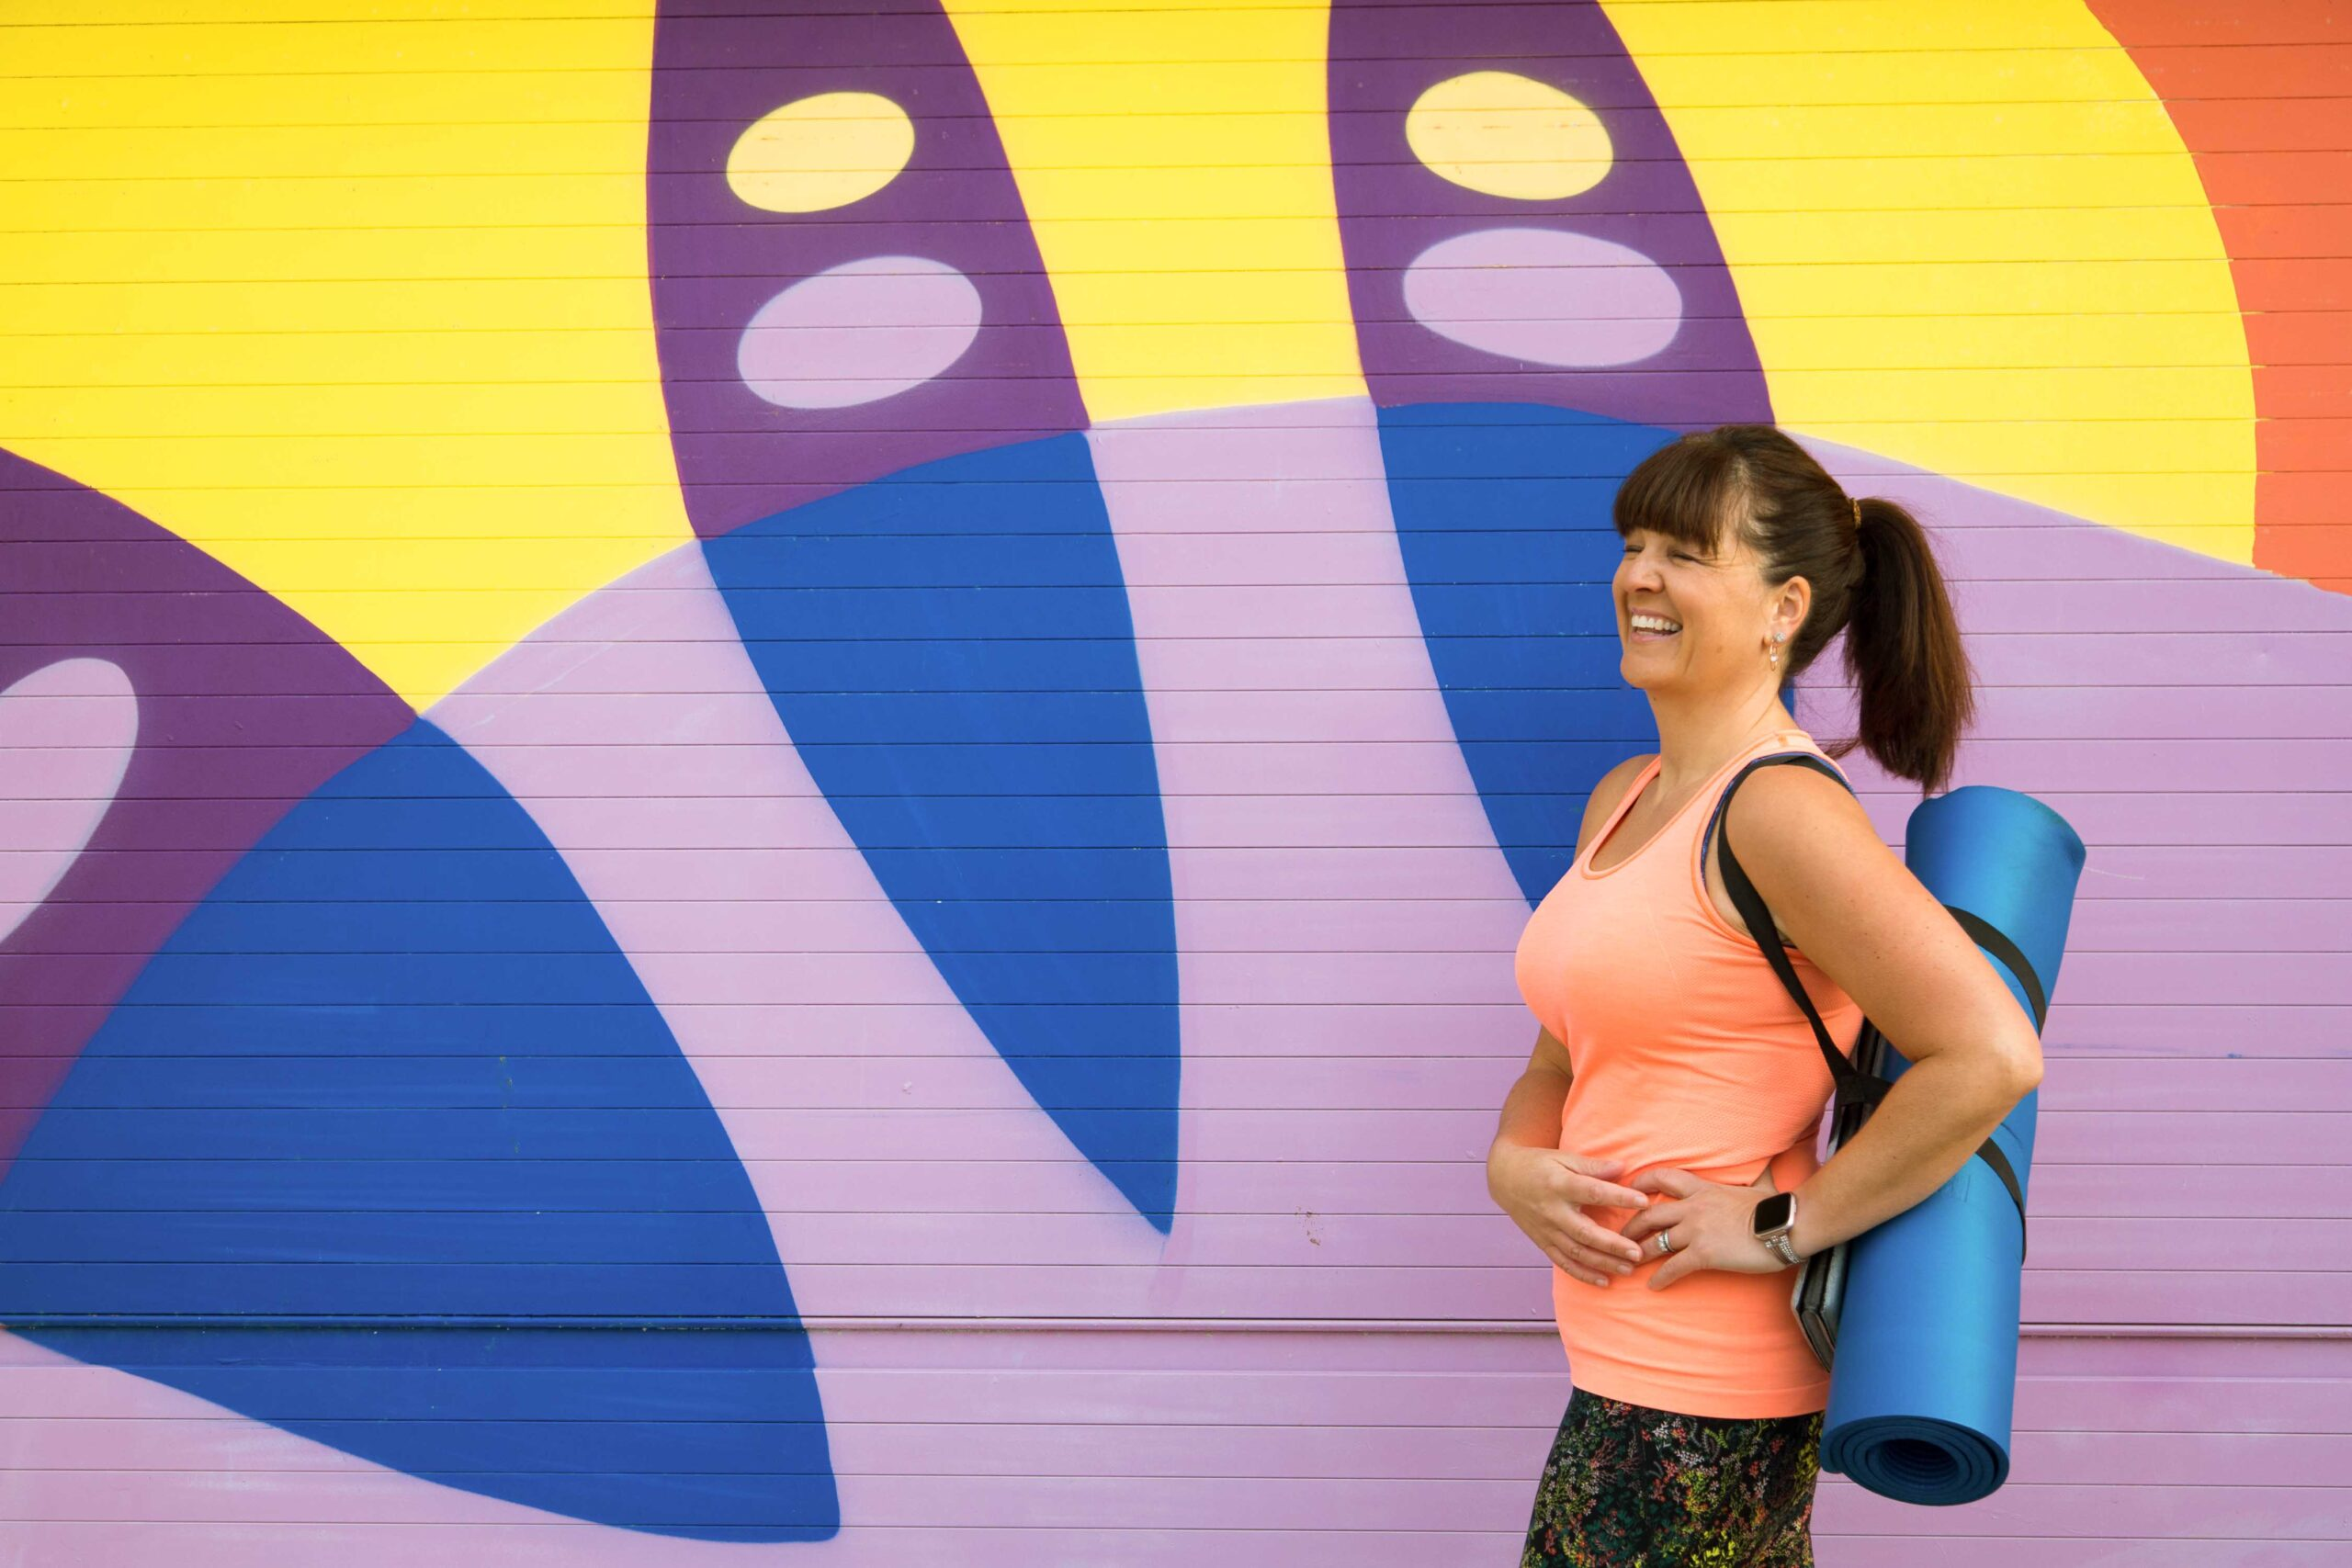 Lady with ilates mat in front of colourful wall